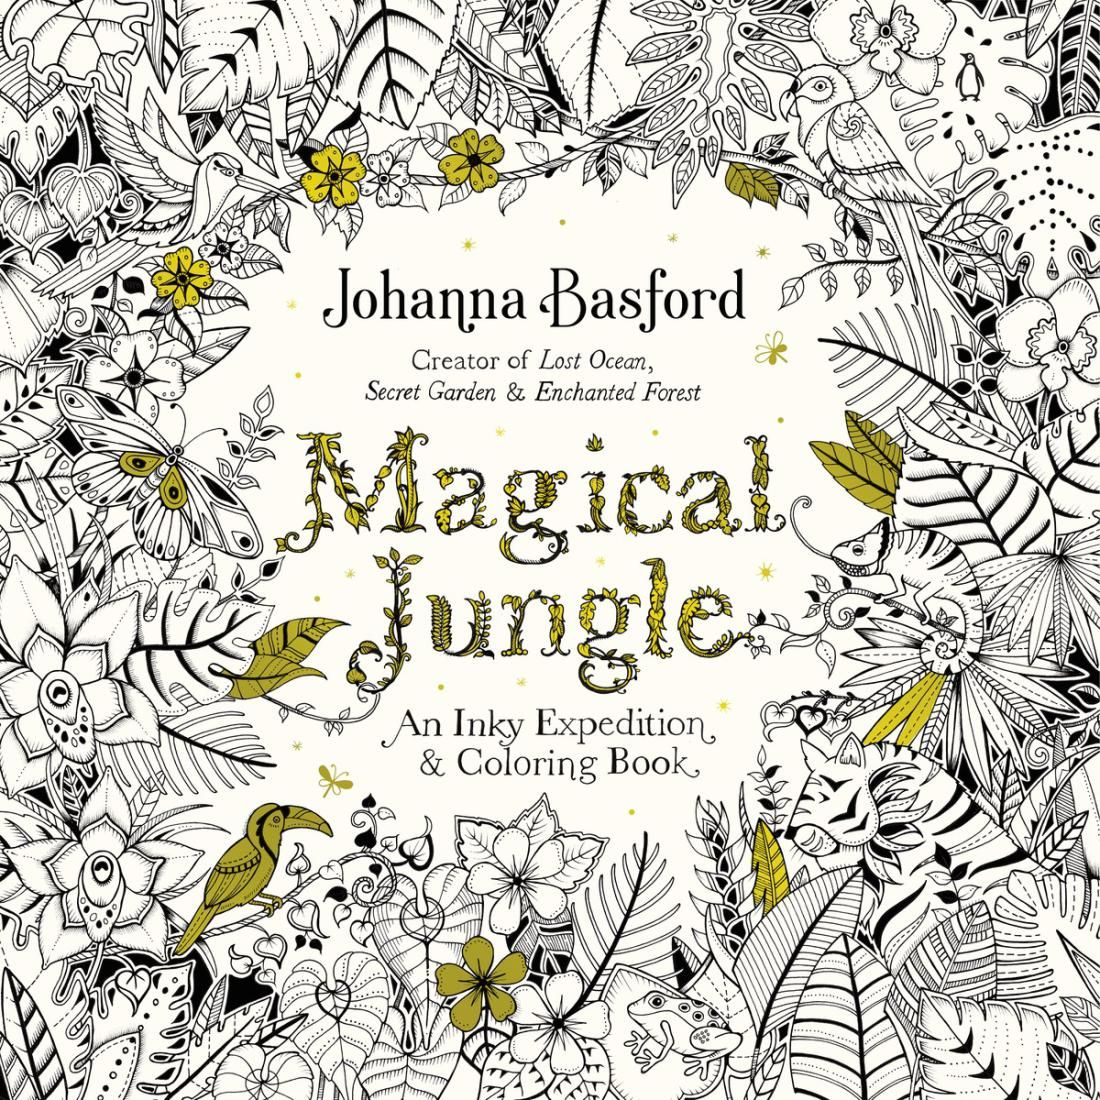 Magical Jungle An Inky Expedition And Coloring Book Johanna Basford March 1 2016